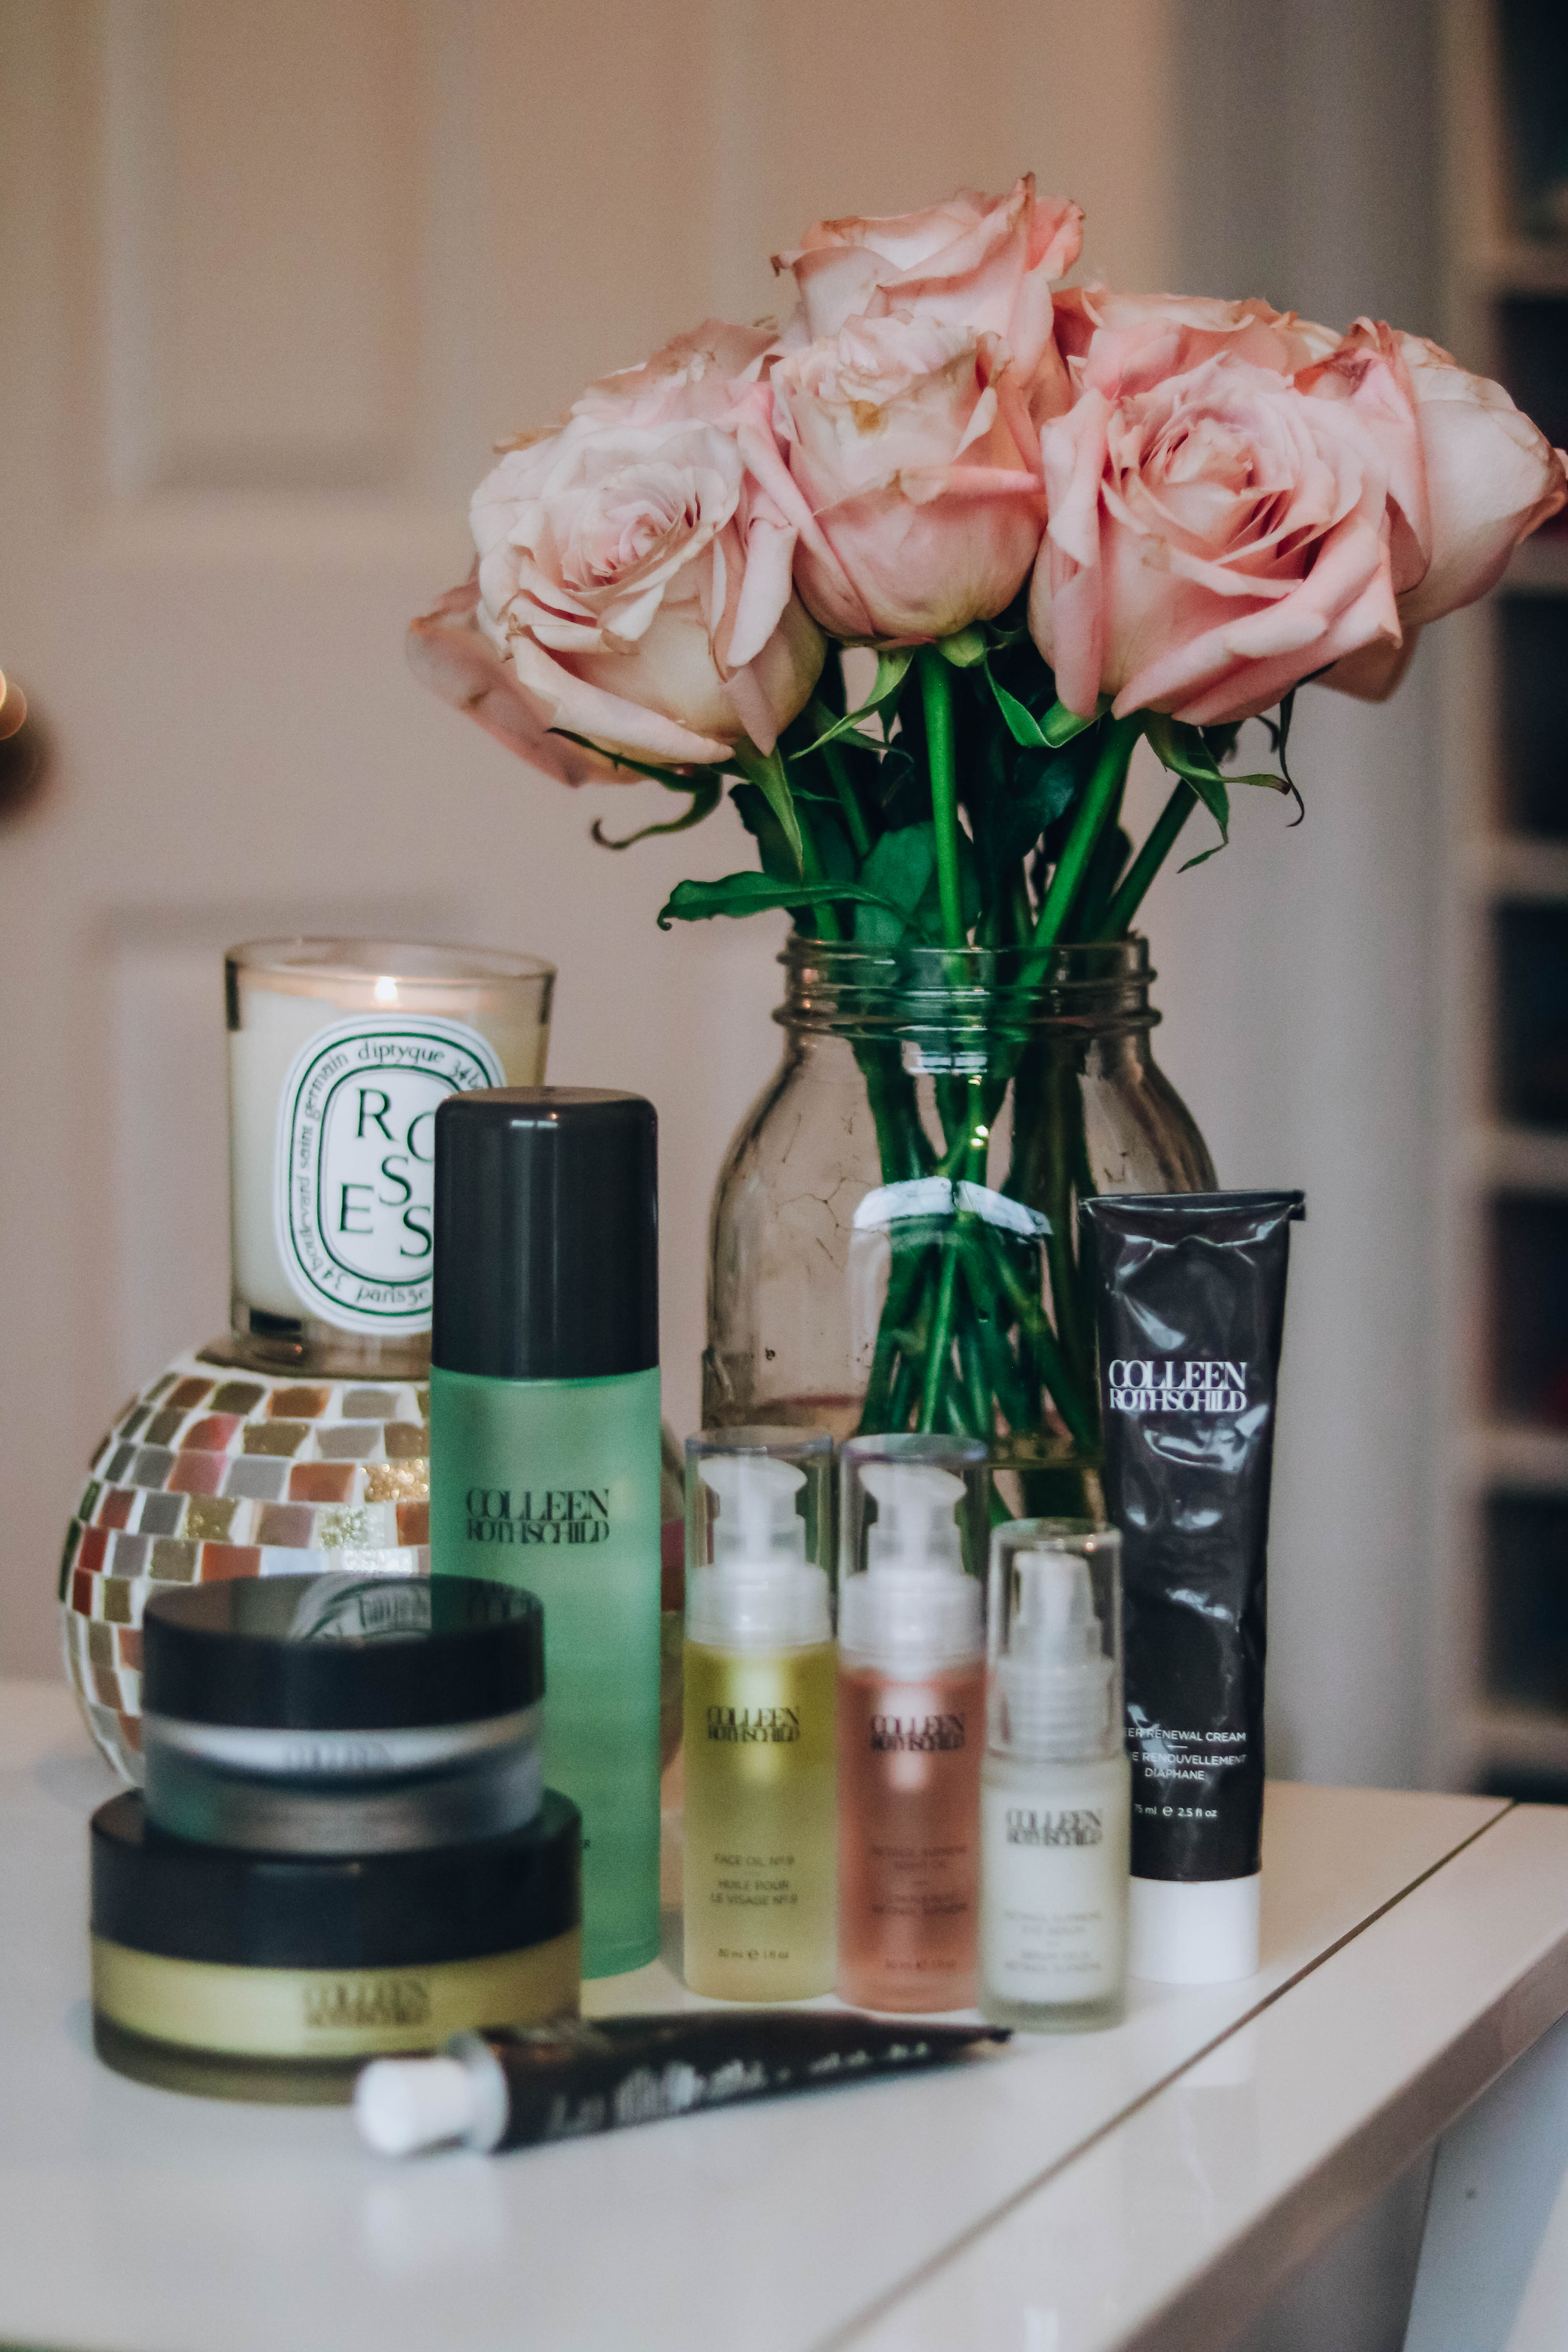 How to get Smooth Skin, even in Winter! - Celebrating the 5th Anniversary Sale of Colleen Rothschild, with some favorite products + ingredients to survive the season!